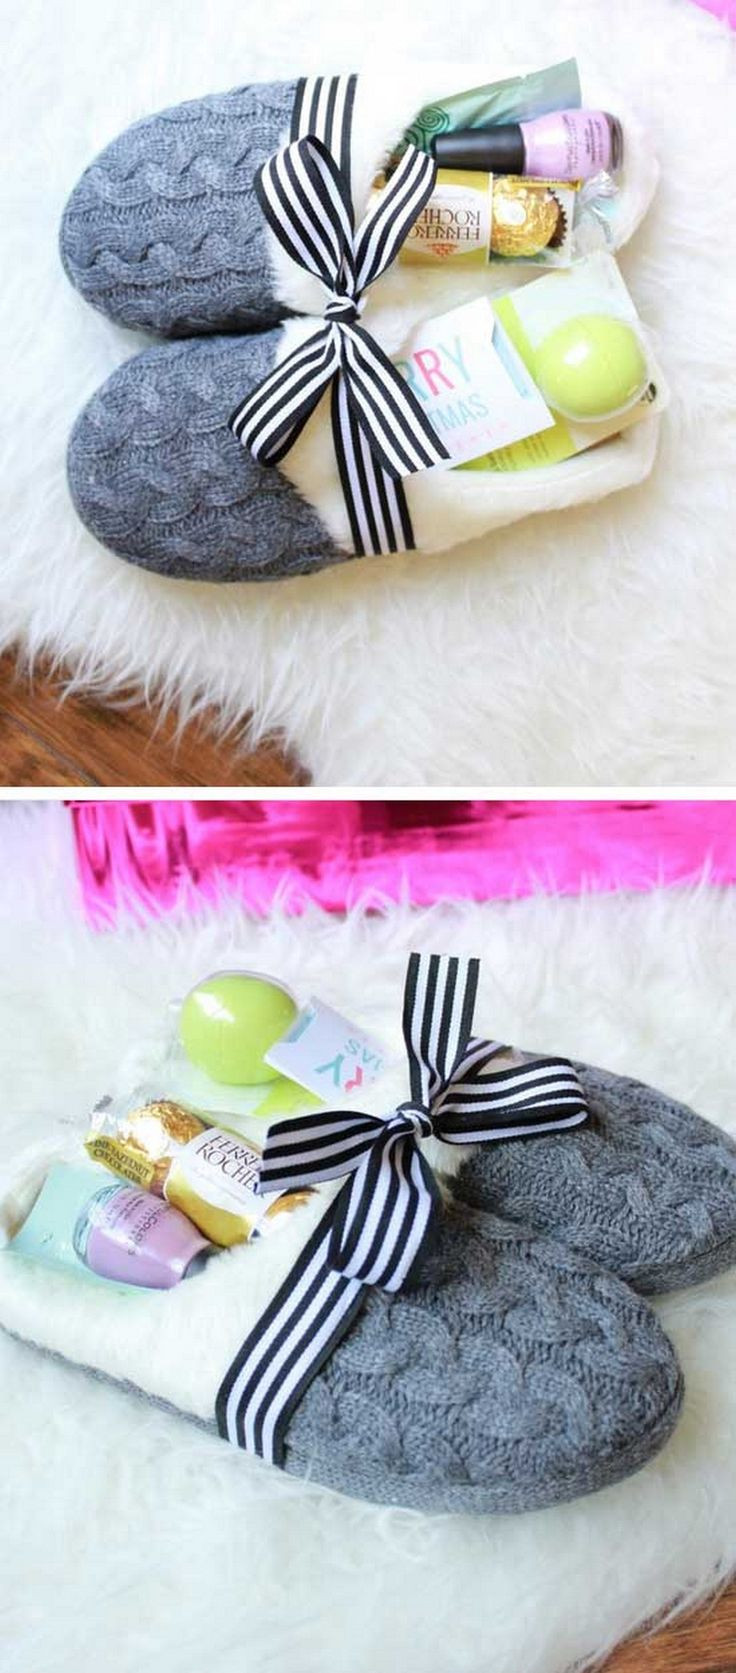 Best ideas about DIY Christmas Gifts For Best Friends . Save or Pin Best 25 Diy best friend ts ideas on Pinterest Now.